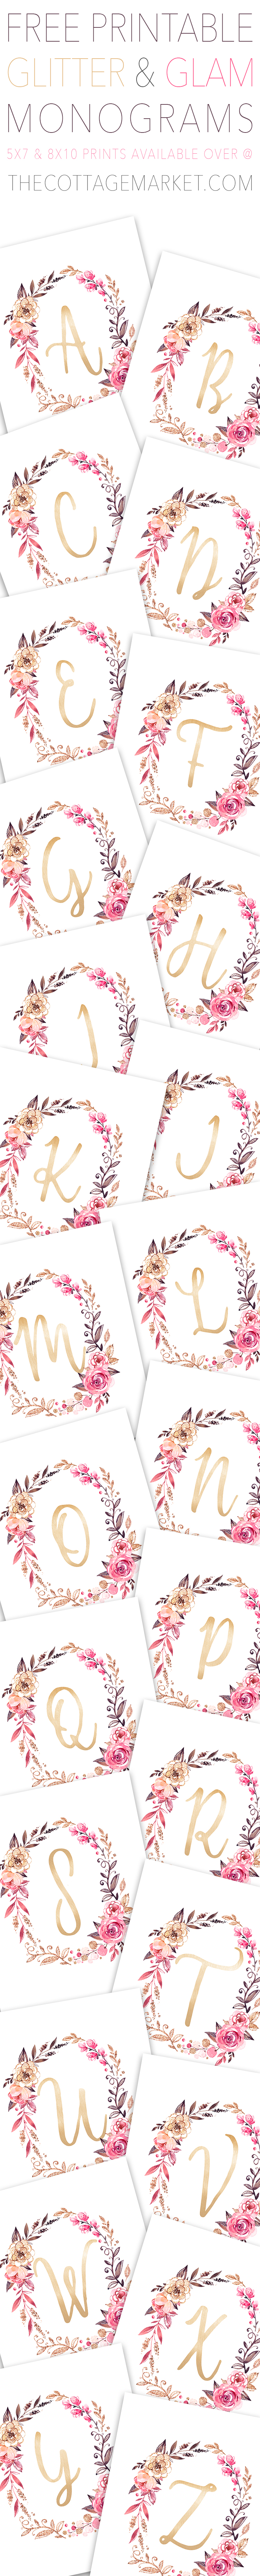 image relating to Free Printable Monogram named Free of charge Glitter and Glam Monogram Printables The Cottage Marketplace